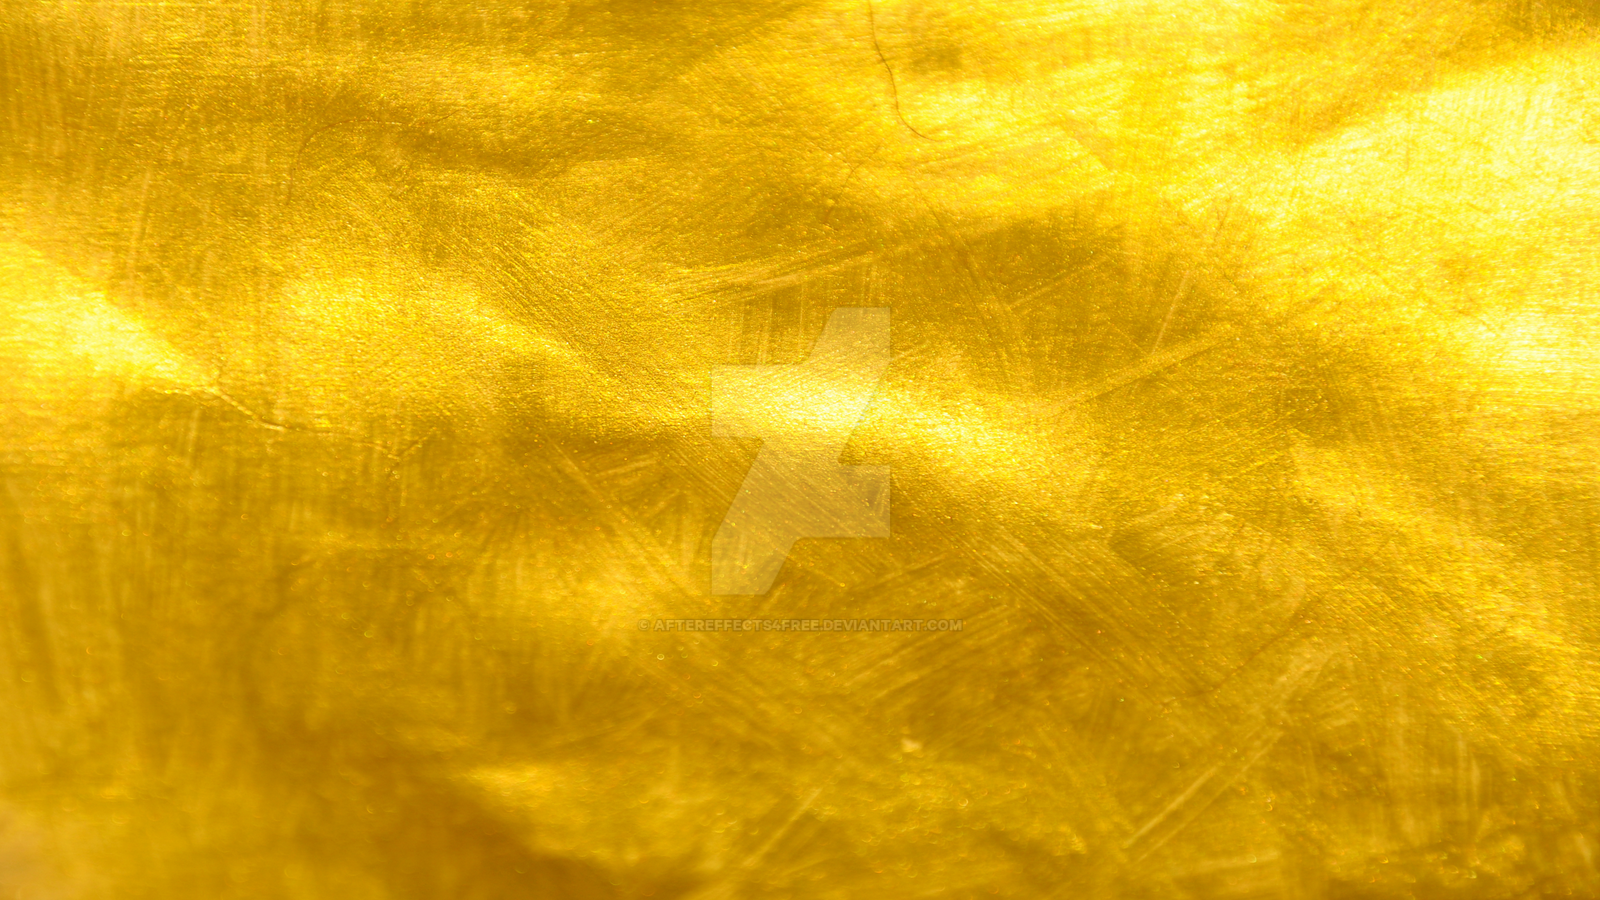 Gold Texture 02 00000 By Aftereffects4free On DeviantArt